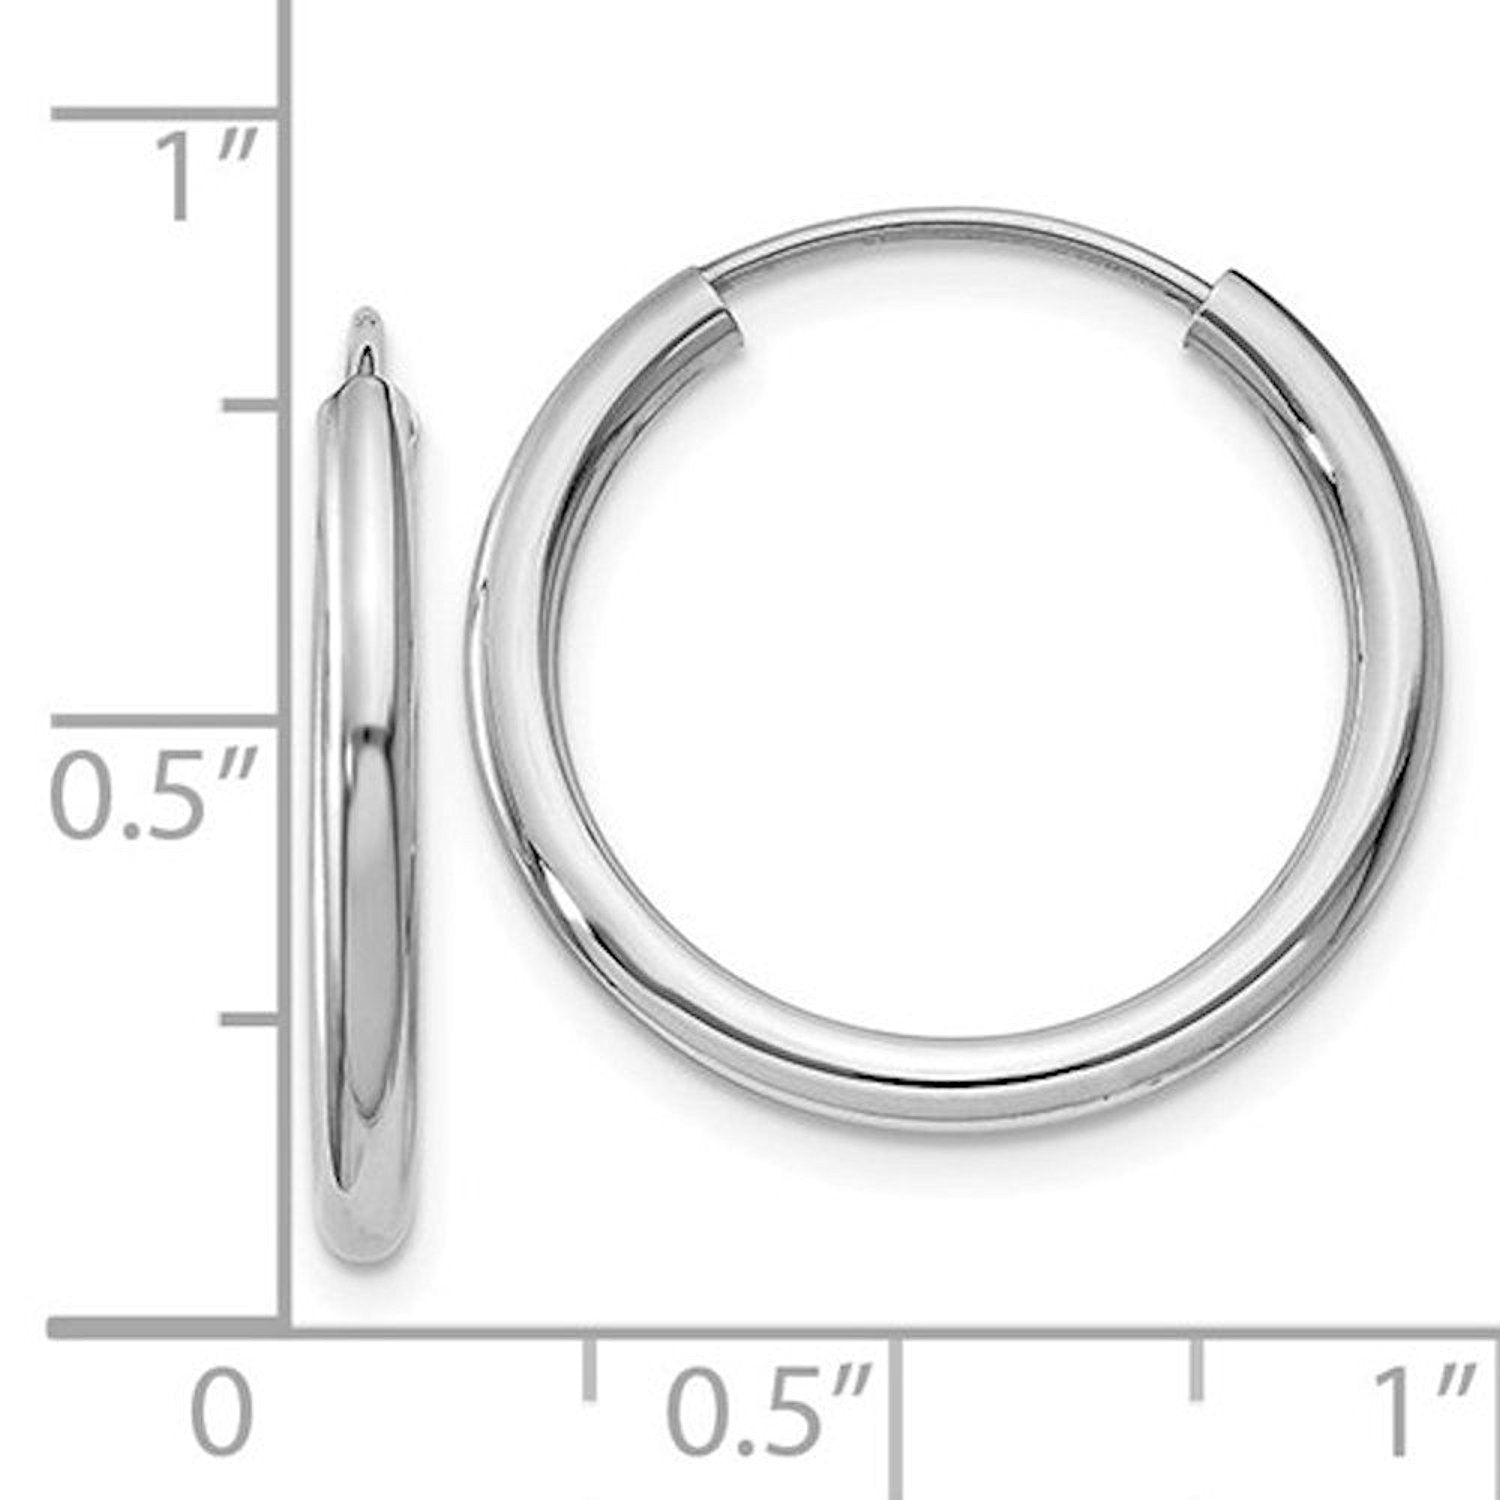 14k White Gold Round Endless Hoop Earrings 19mm x 2mm